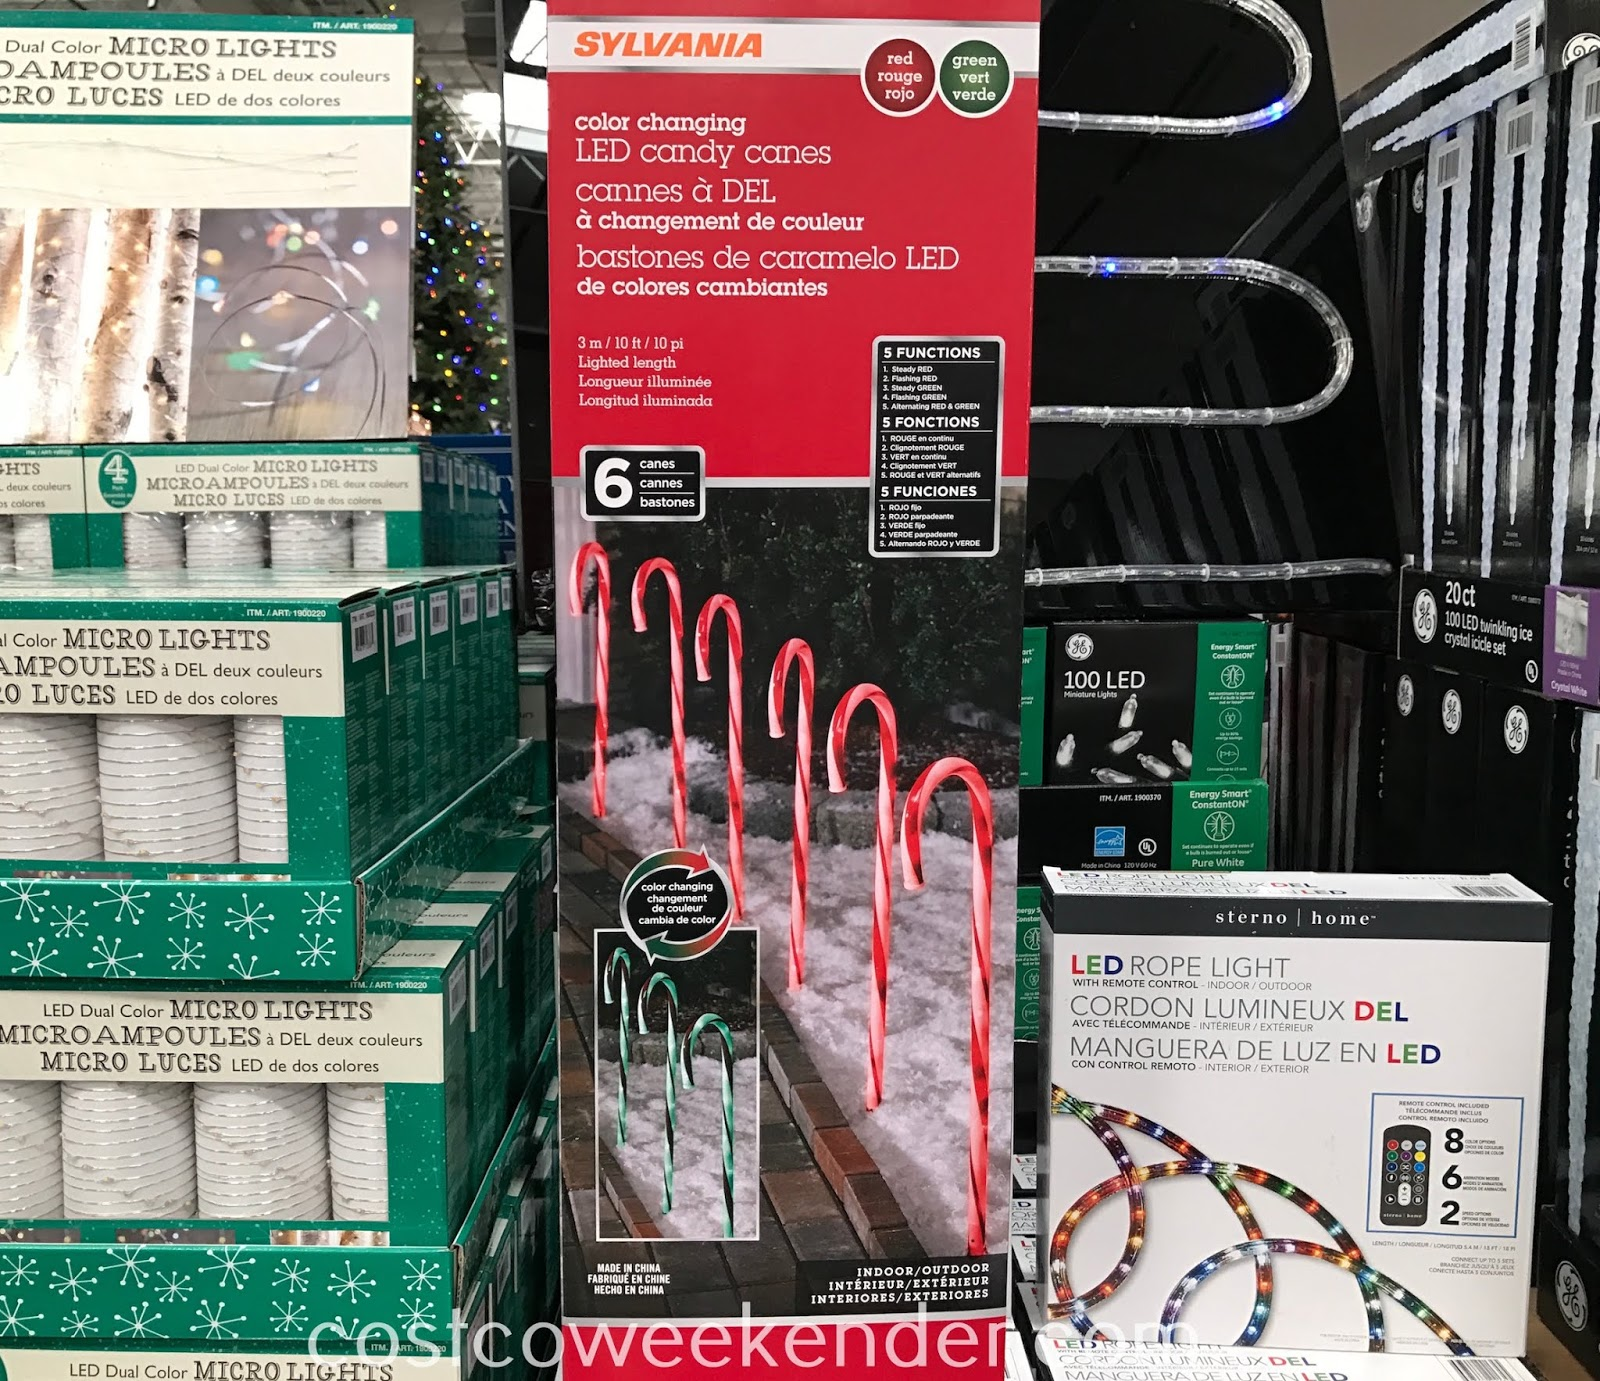 Sylvania Color Changing Led Candy Cane Lights Costco Weekender